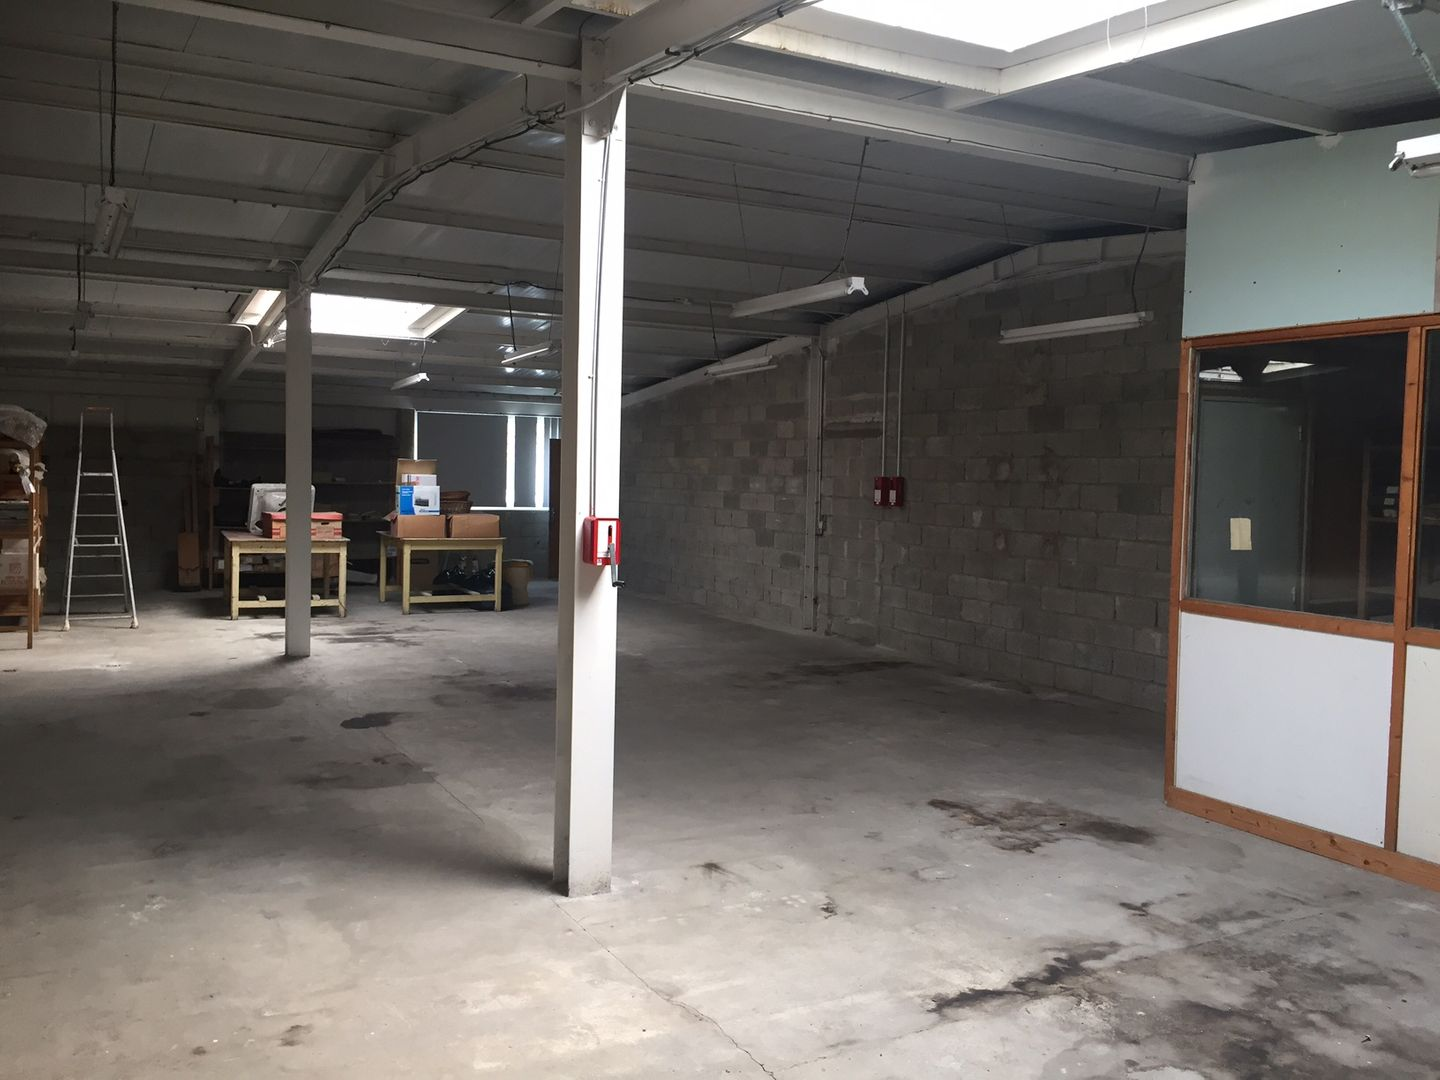 local commercial de 1 985m², Mitry-Mory (Seine-et-Marne)